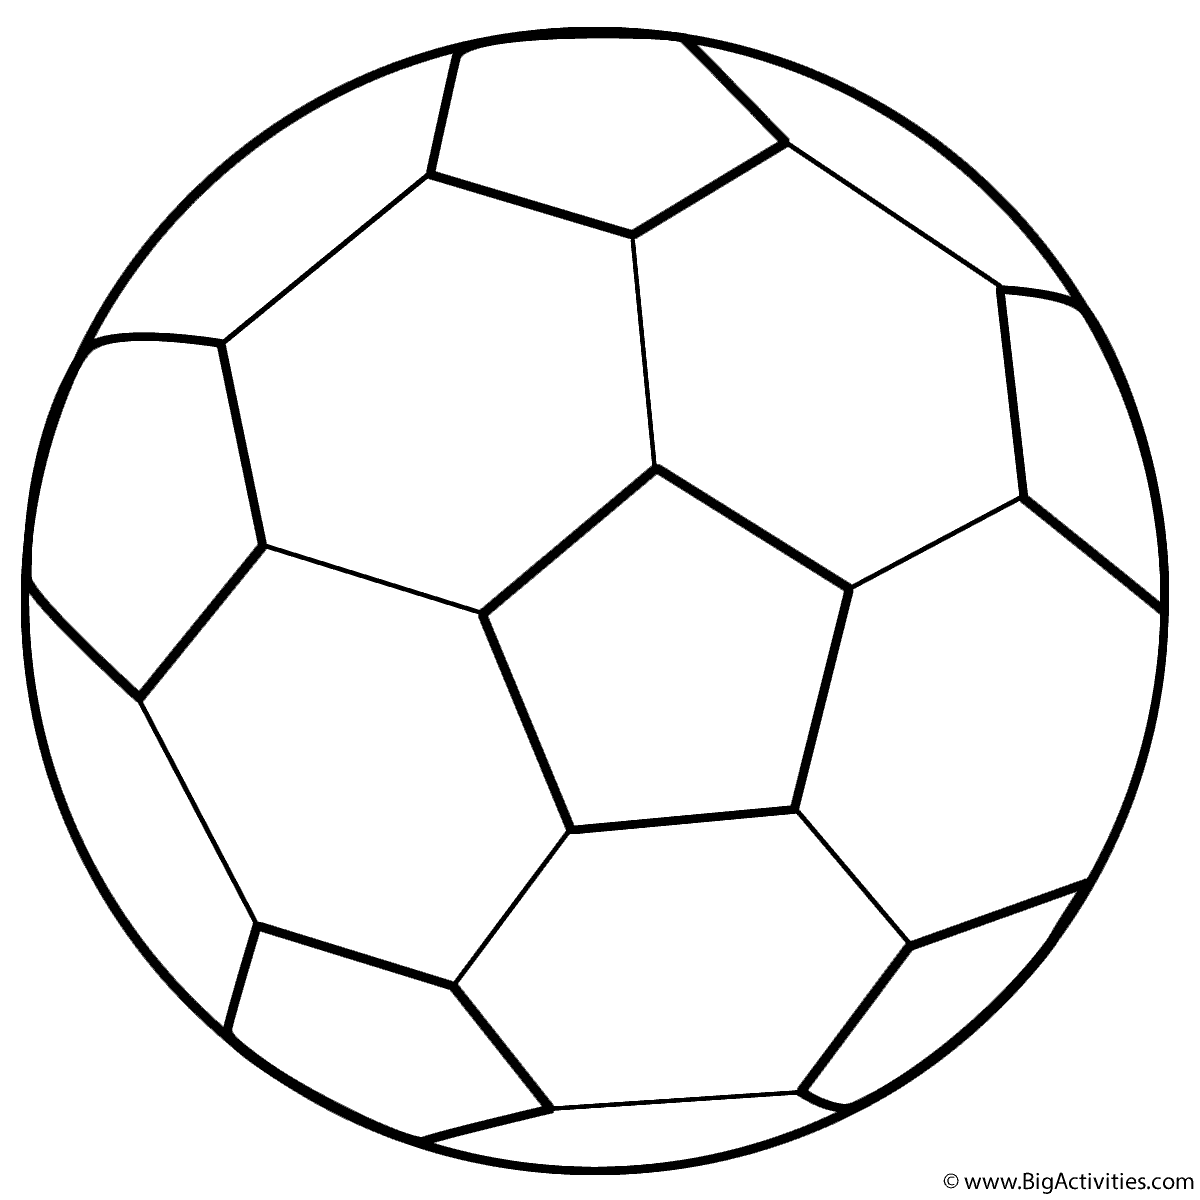 ball coloring pages - photo#3